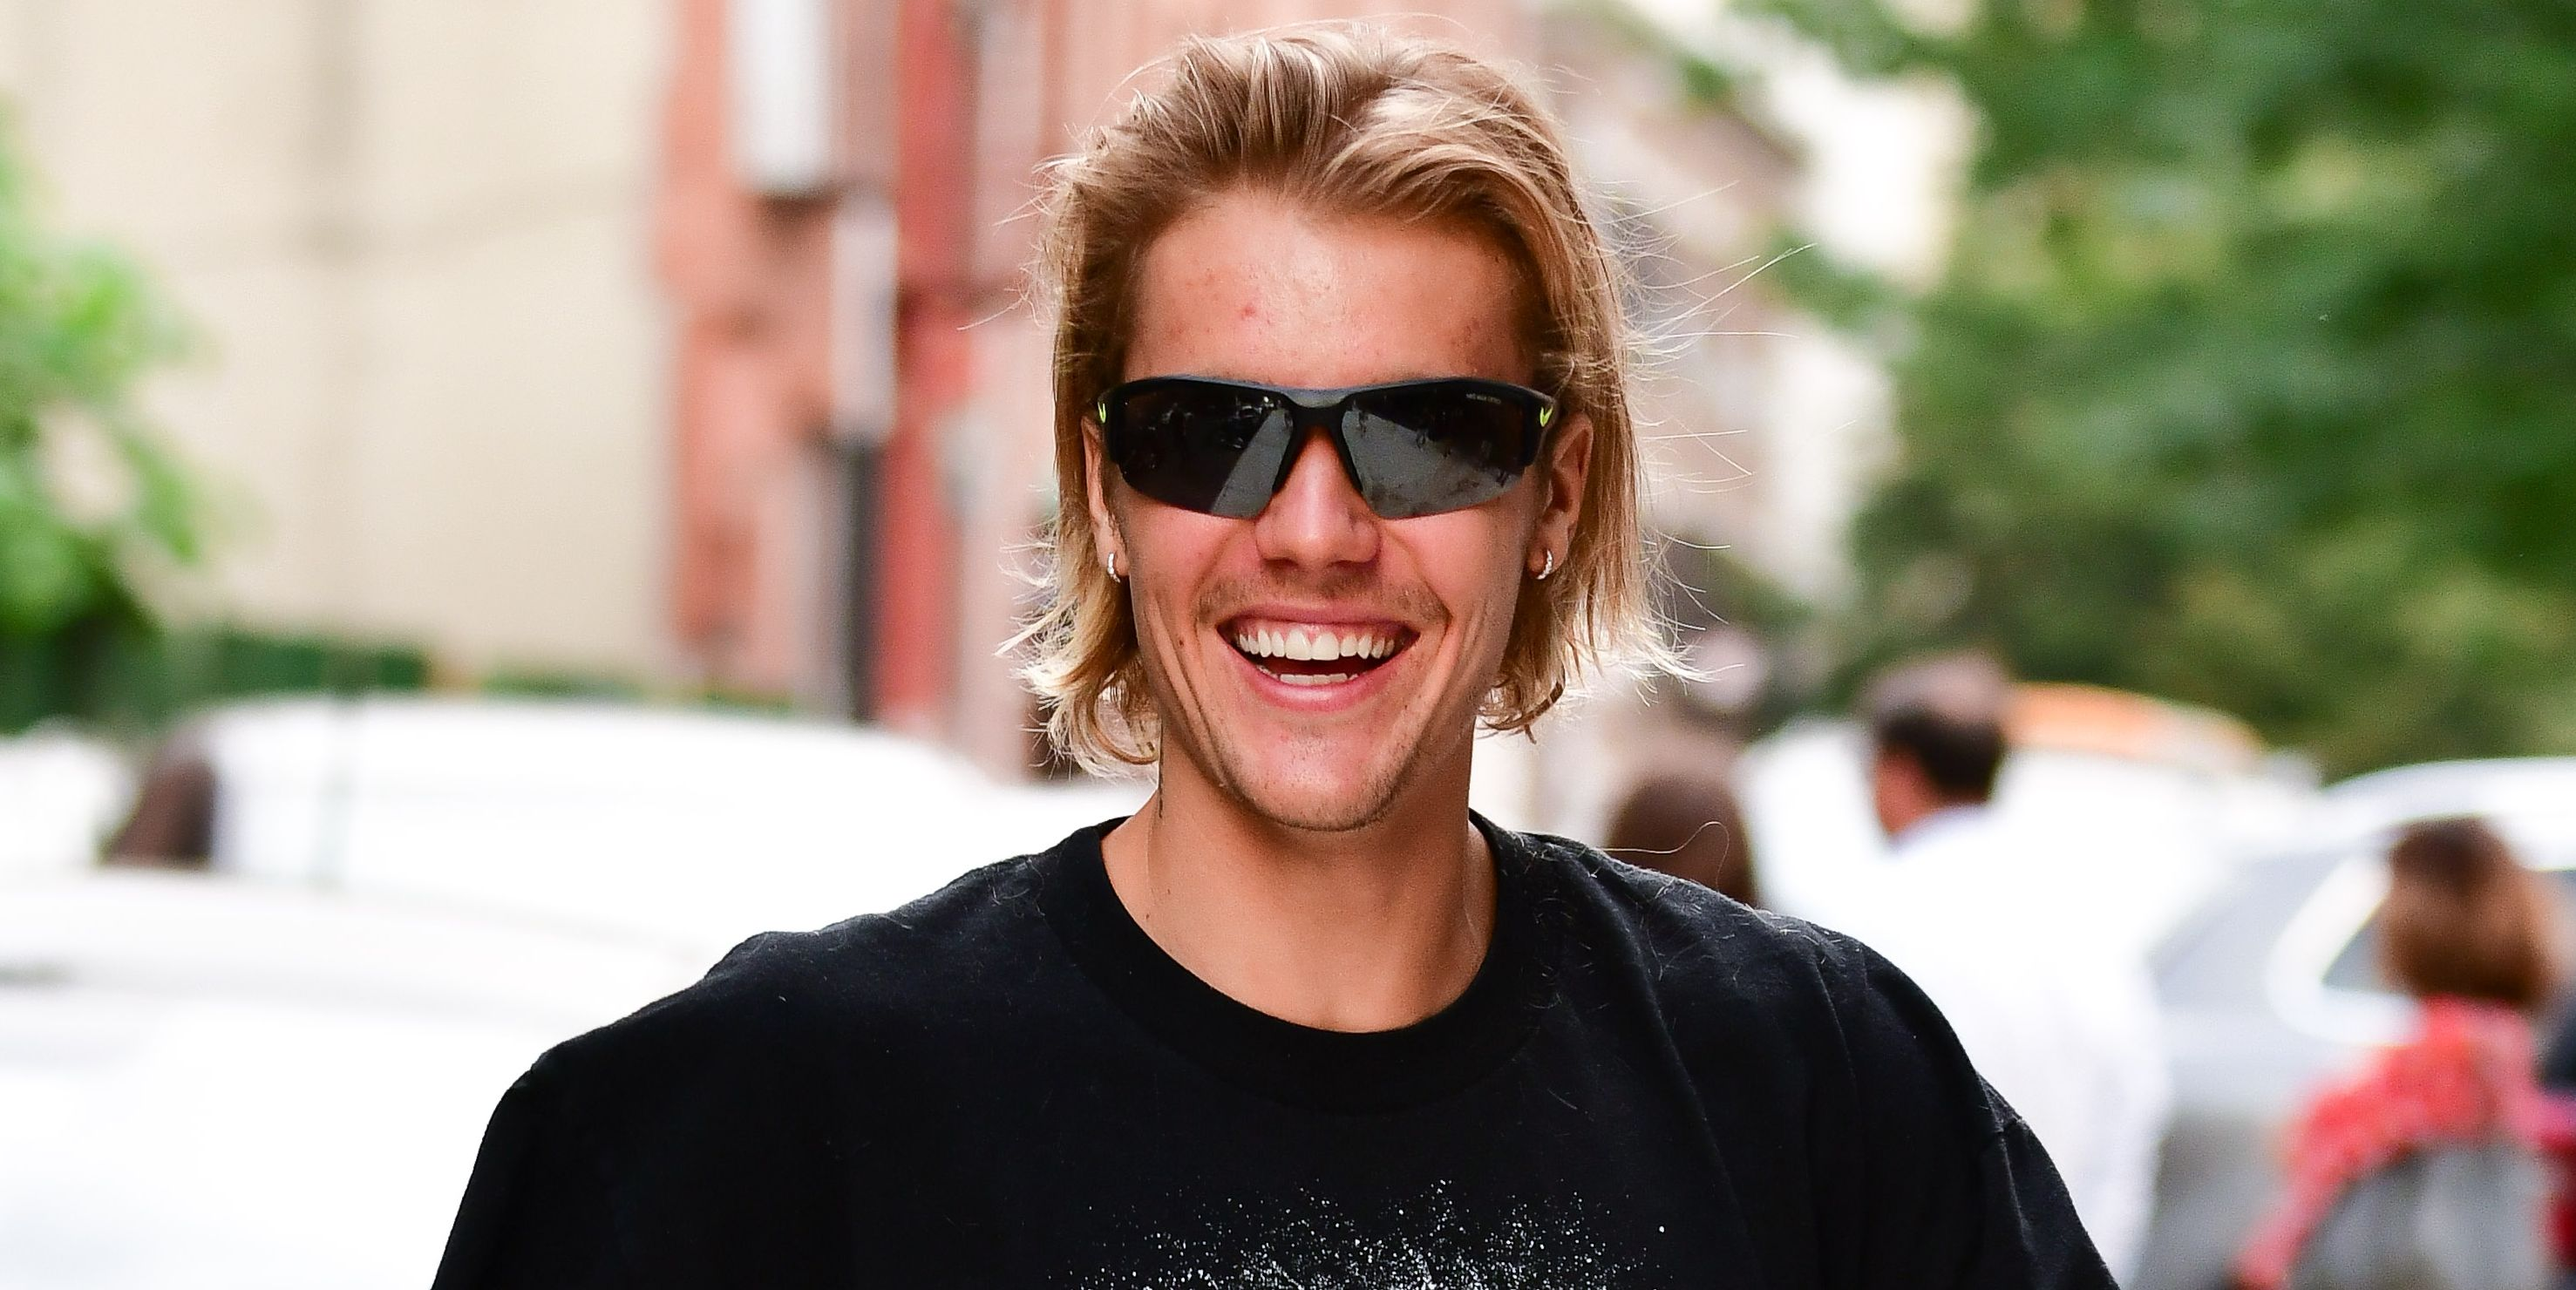 Here's What Justin Bieber Might Be Learning About Marriage Before His Wedding to Hailey Baldwin